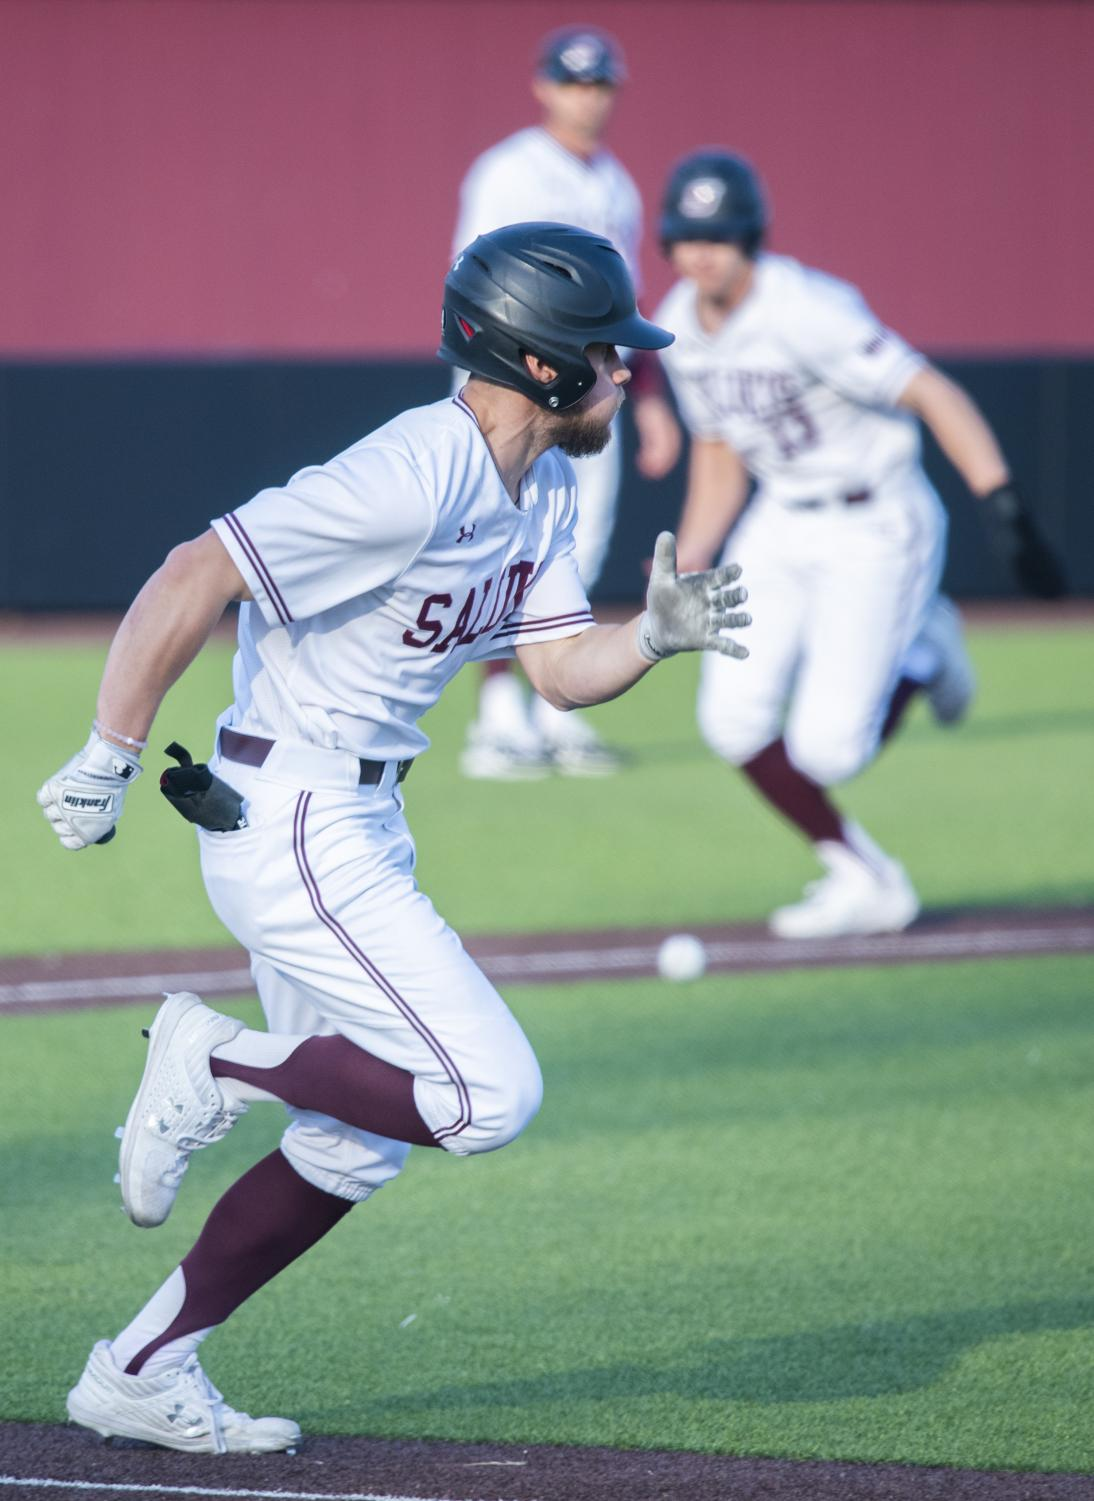 Saluki+sophomore+Brad+Hudson+runs+to+first+base+on+Tuesday%2C+March+19%2C+2019+during+the+Salukis%27+7-6+win+against+the+SIUE+Cougars+at+the+Itchy+Jones+Stadium.